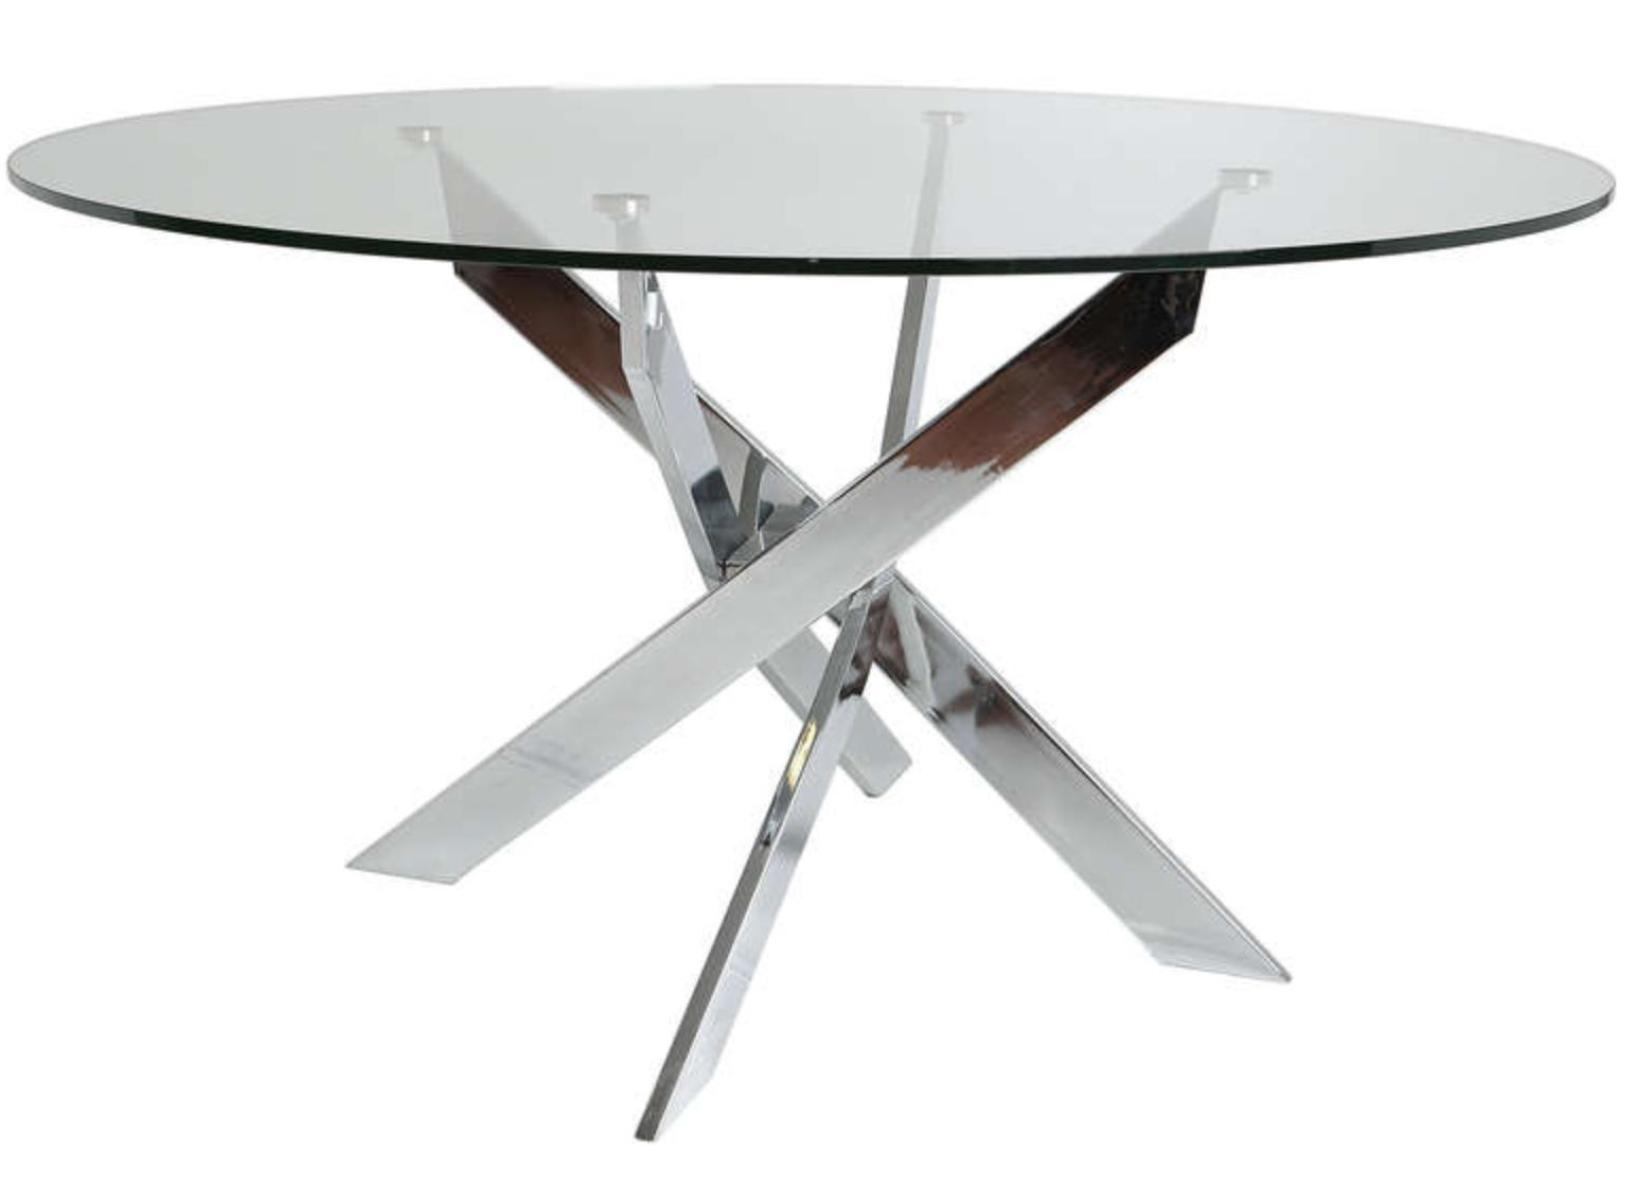 Table de cuisine ronde en verre dco table chaises - Table basse ronde verre ...